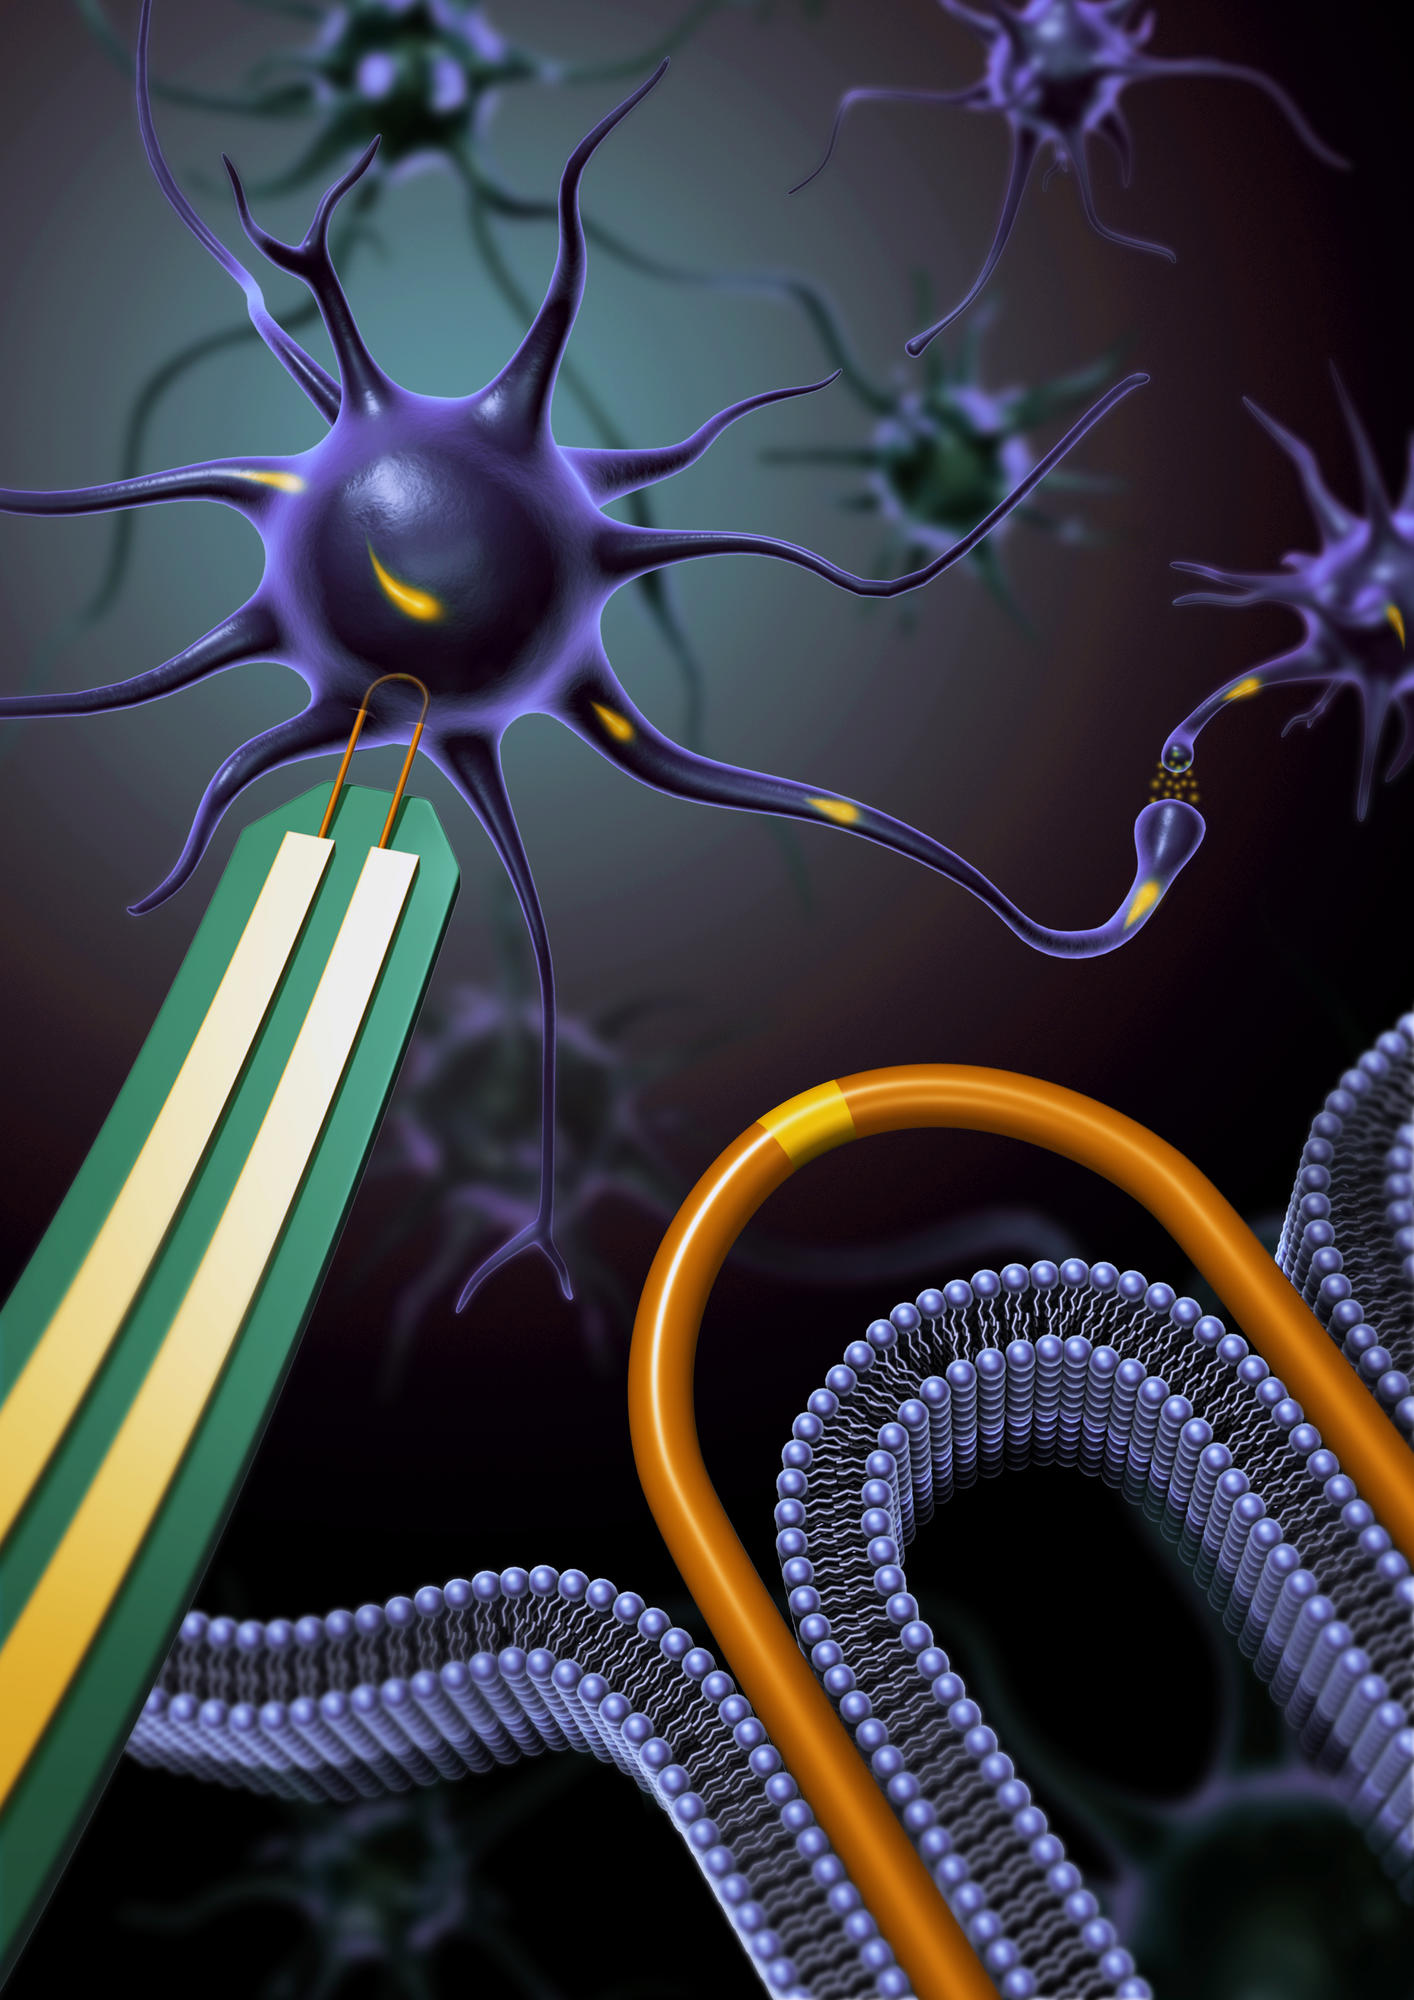 An army of nanowire devices could accelerate research on how our brain and cardiac cells communicate